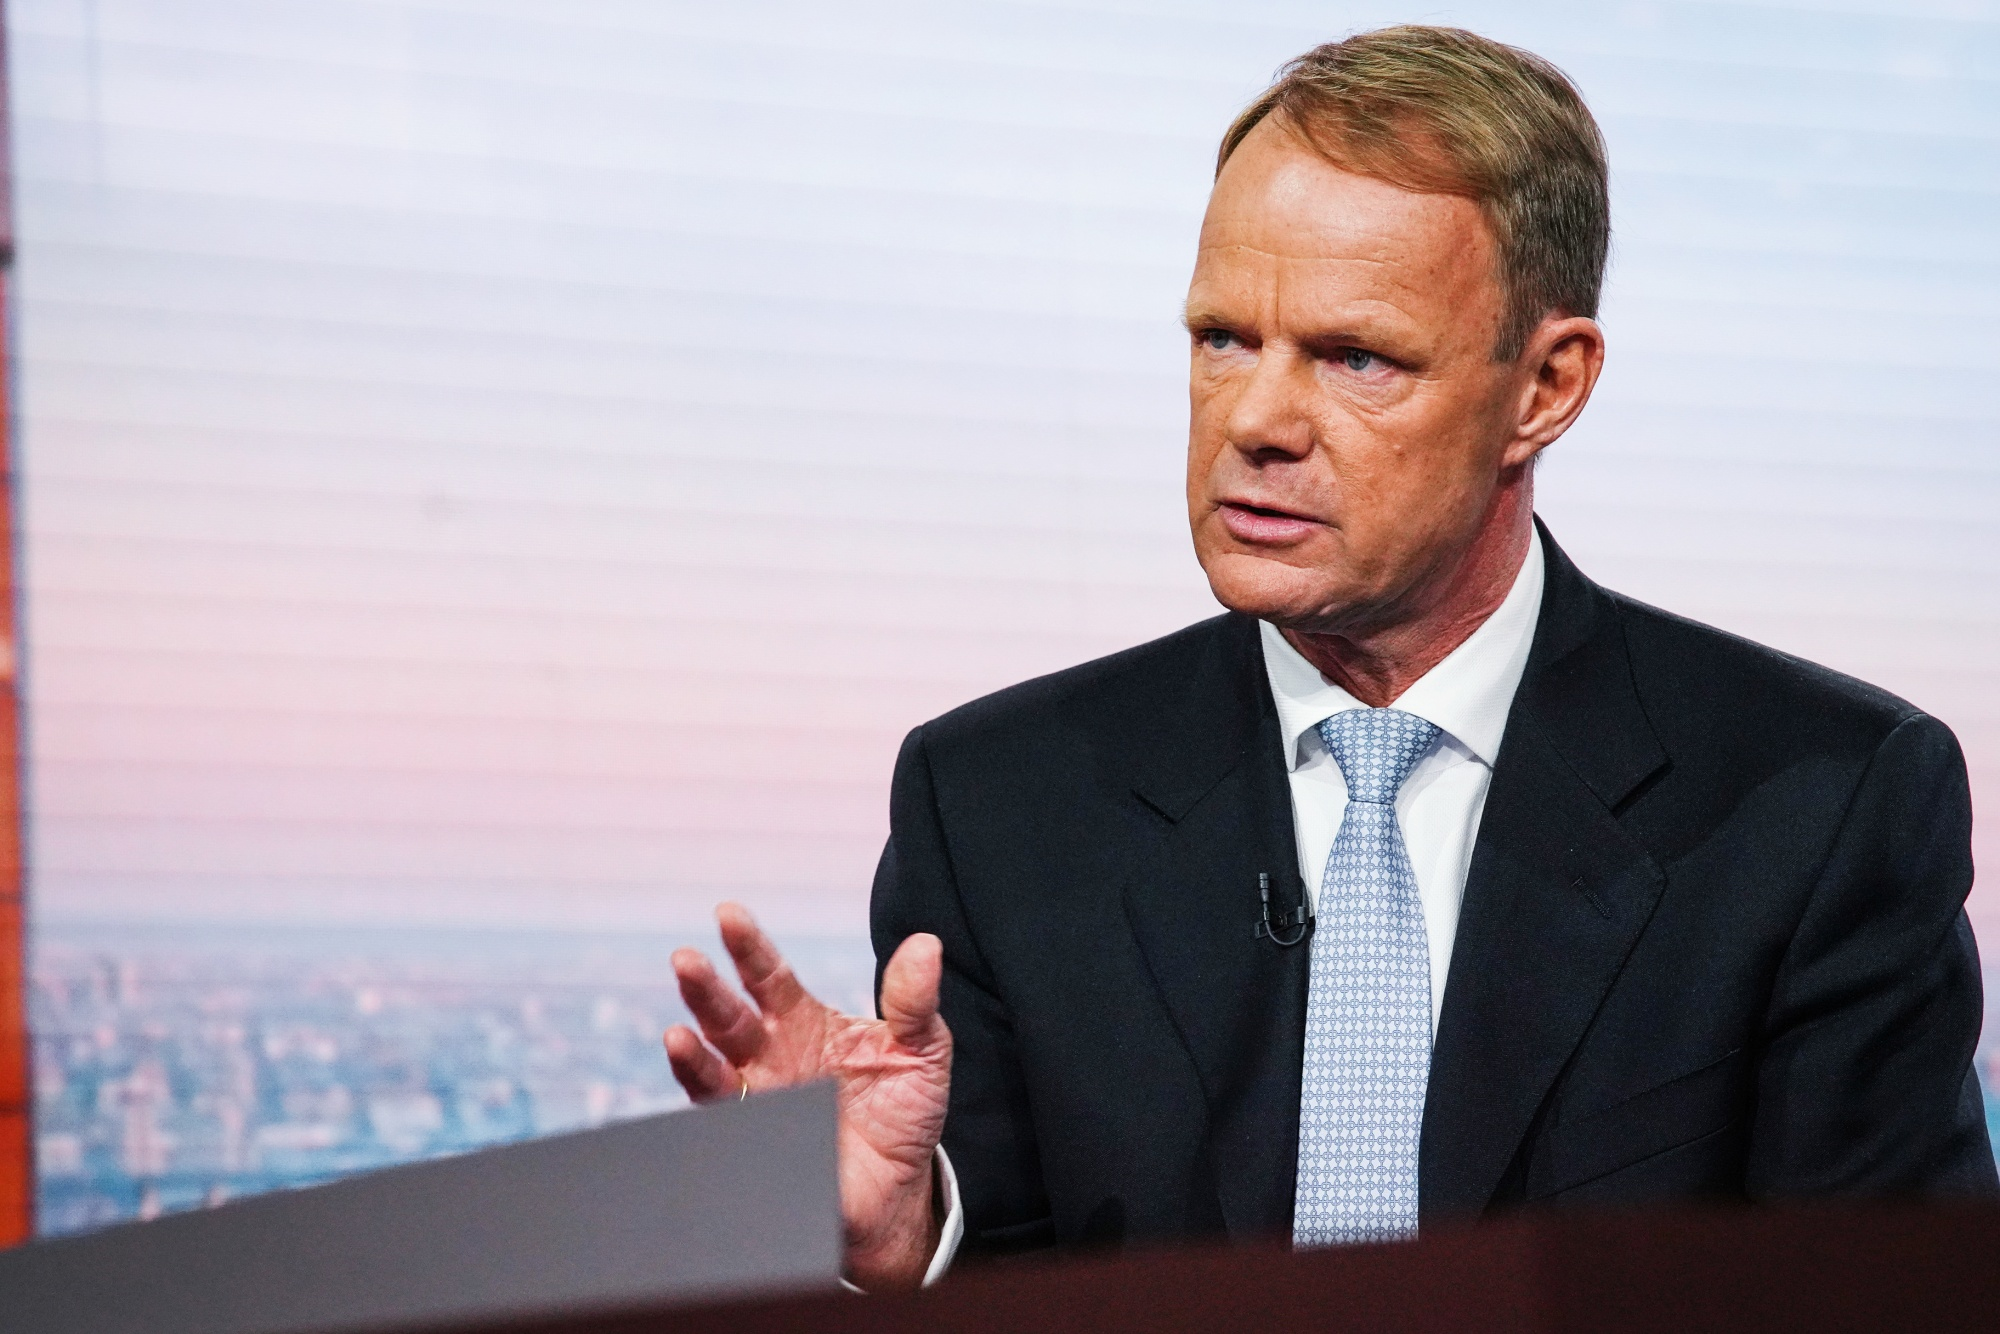 Teva Cost-Structure Sustainable After Generic Price Drop, CEO Says